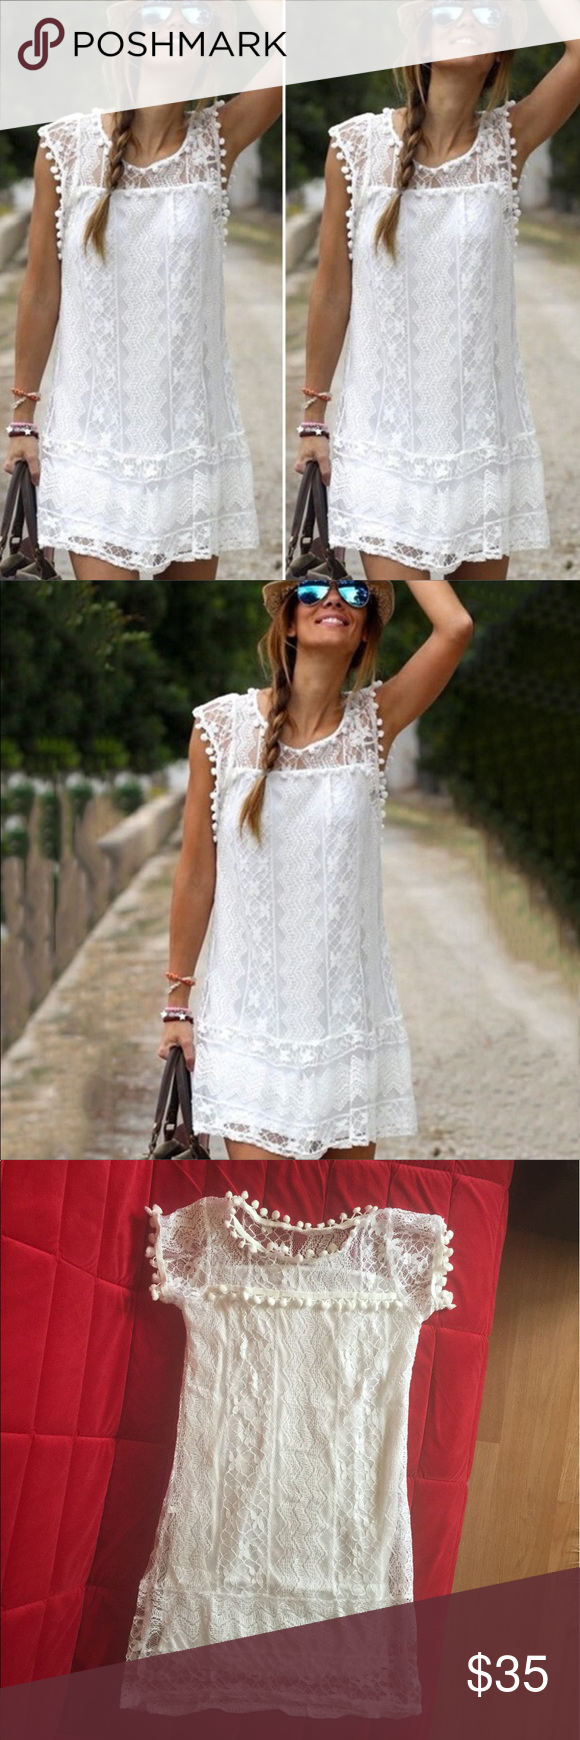 Nostalgia Lace Crochet Dress Brand New Stretchy And Very Comfortable To Skin In My Opinion